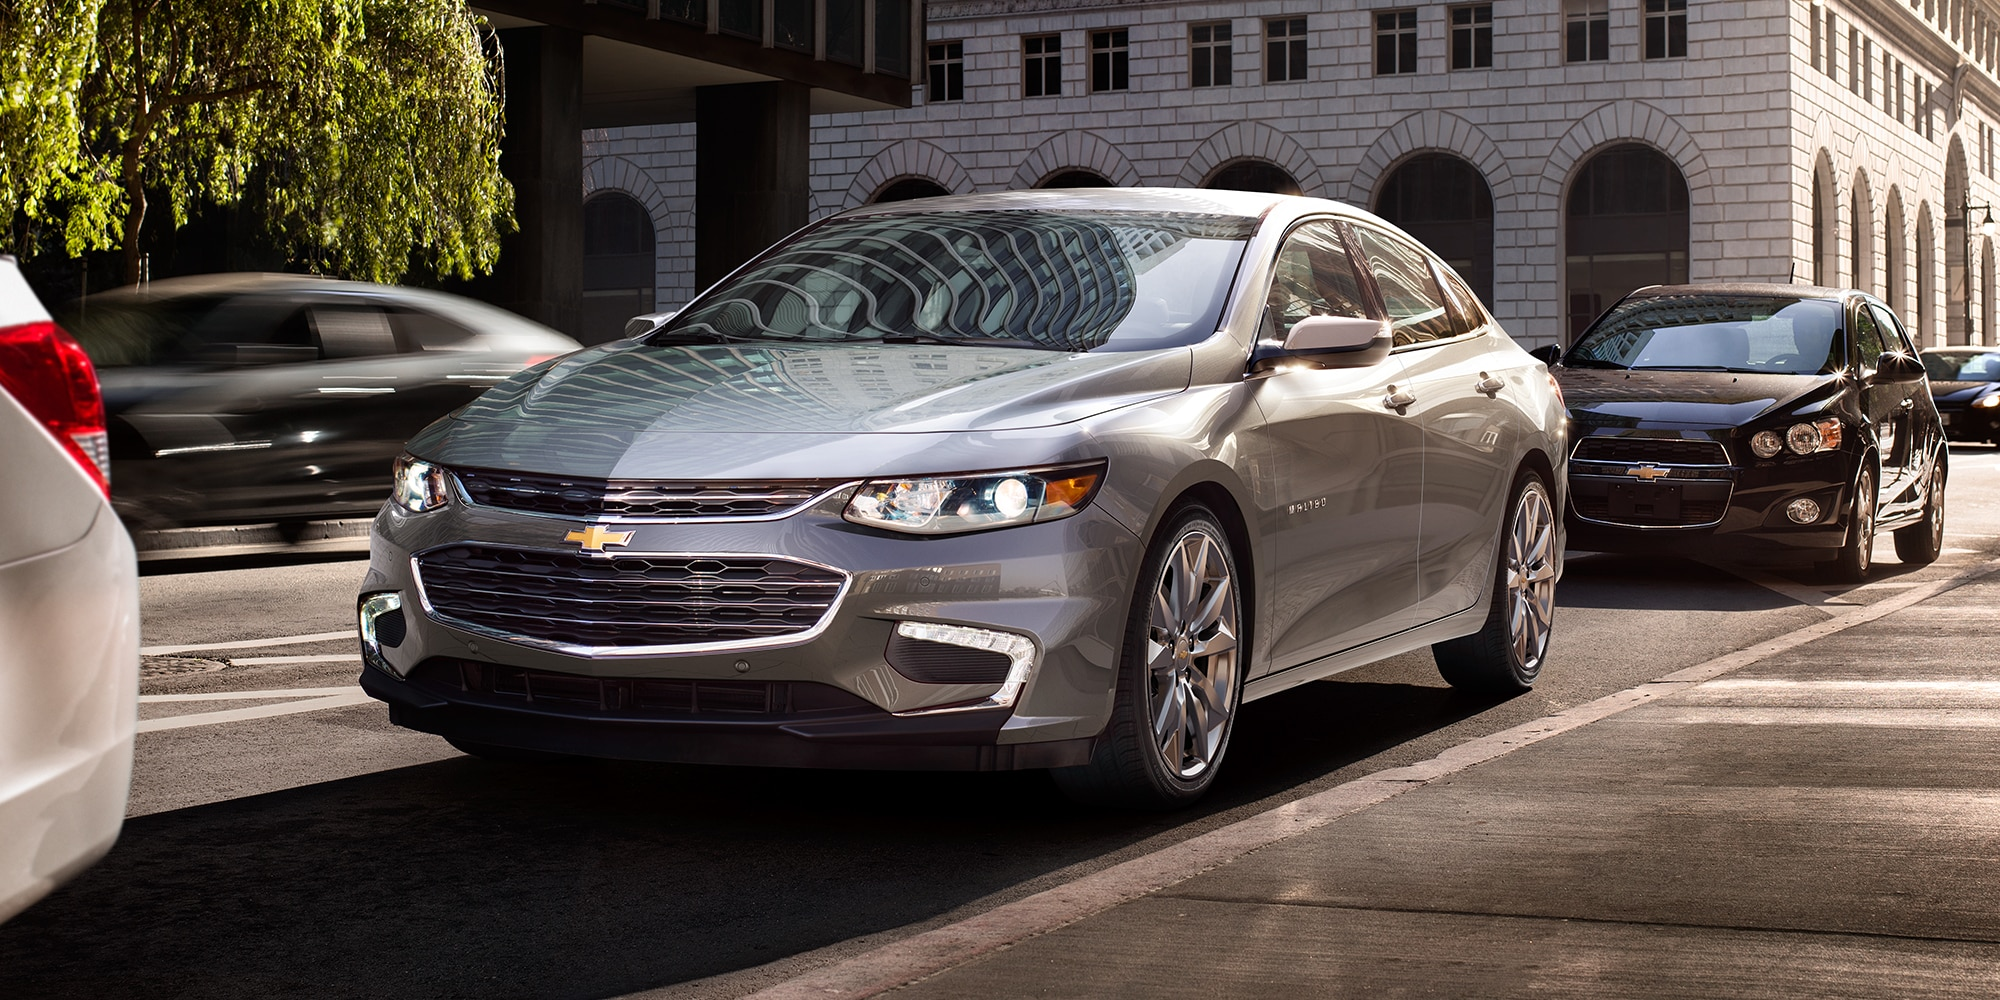 New Chevy Malibu >> Chevrolet Malibu St Louis Chevy Malibu Leases St Louis